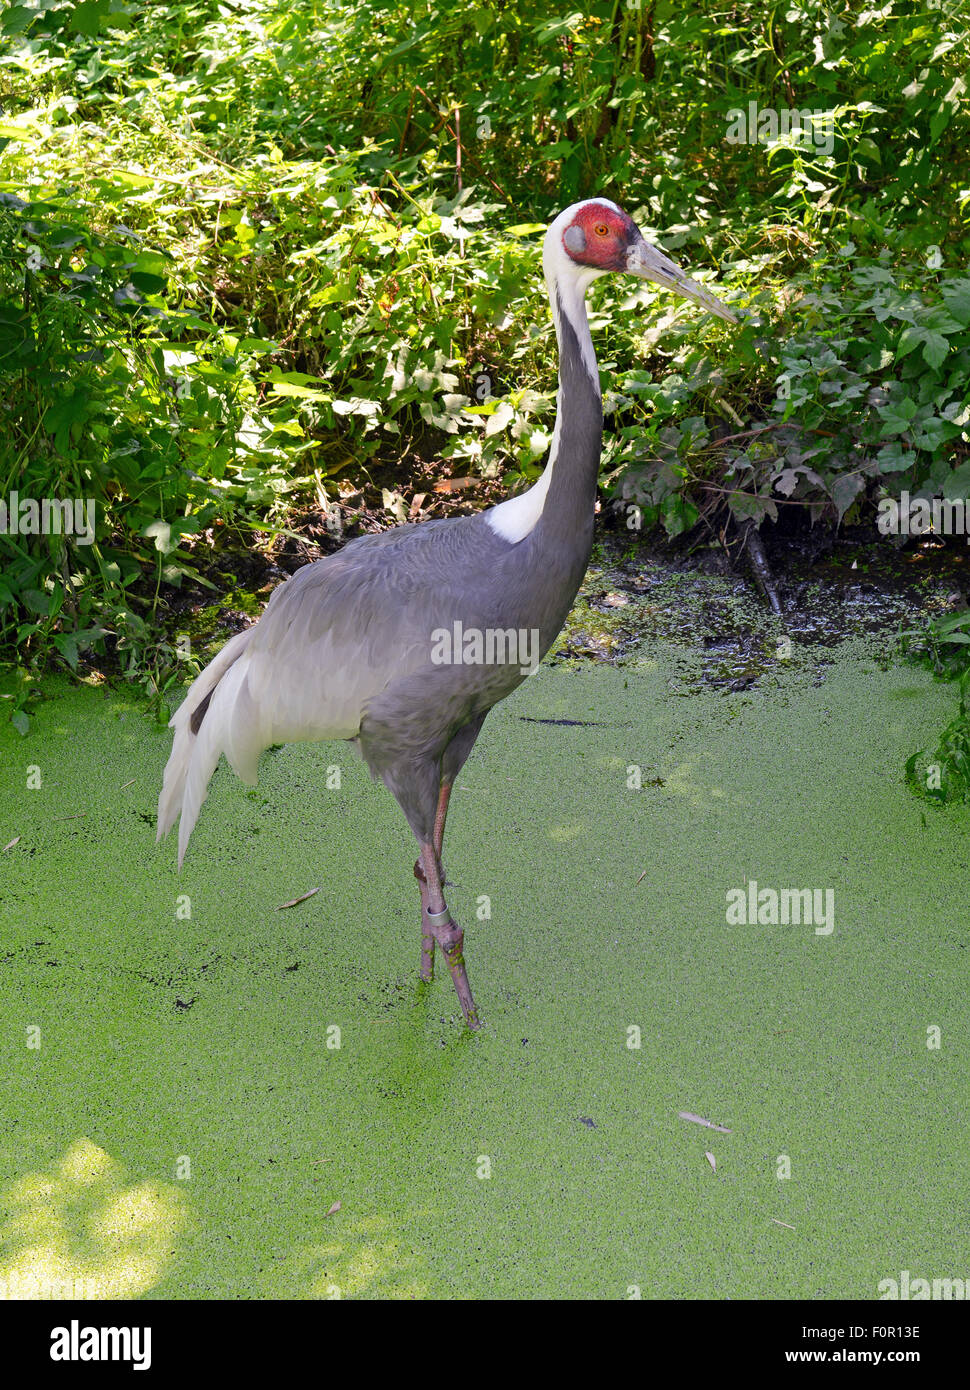 White Naped Cranes Cranes Are Symbolic Of Longevity And Good Luck